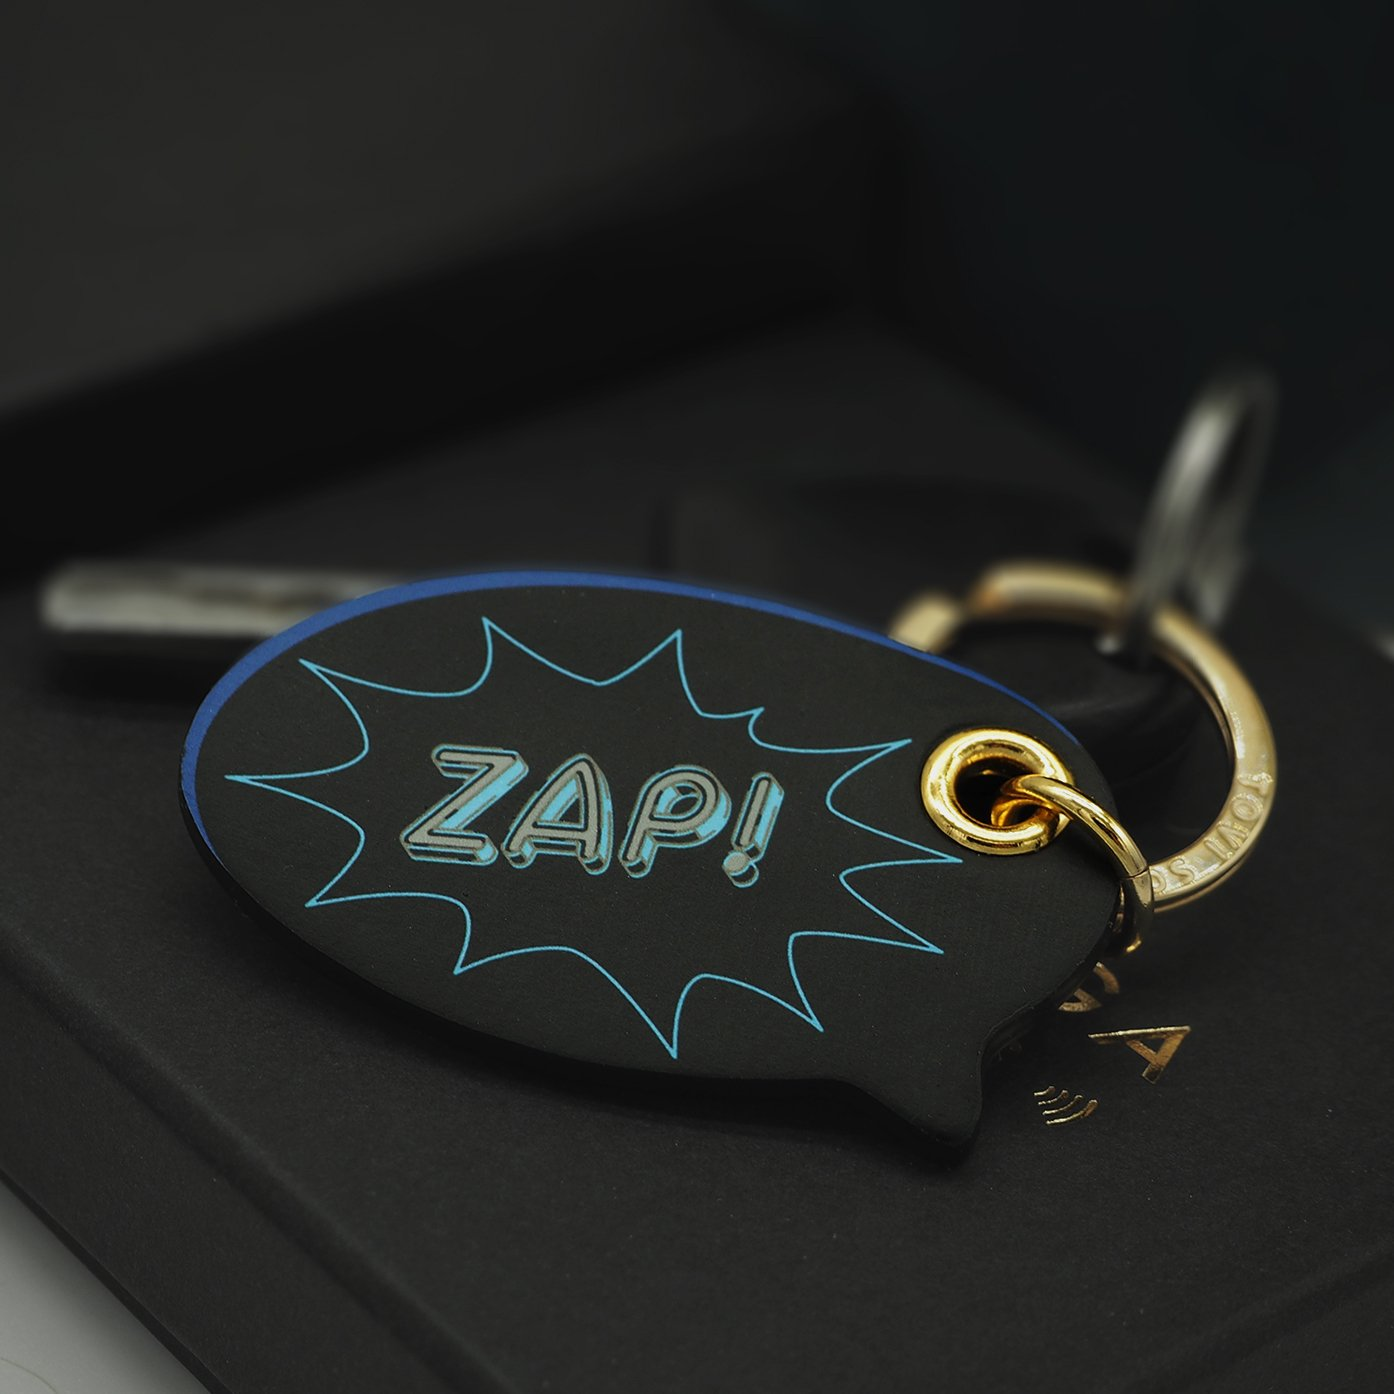 Leather Contactless Payment Key Charm - Zap! Tovi Sorga Black